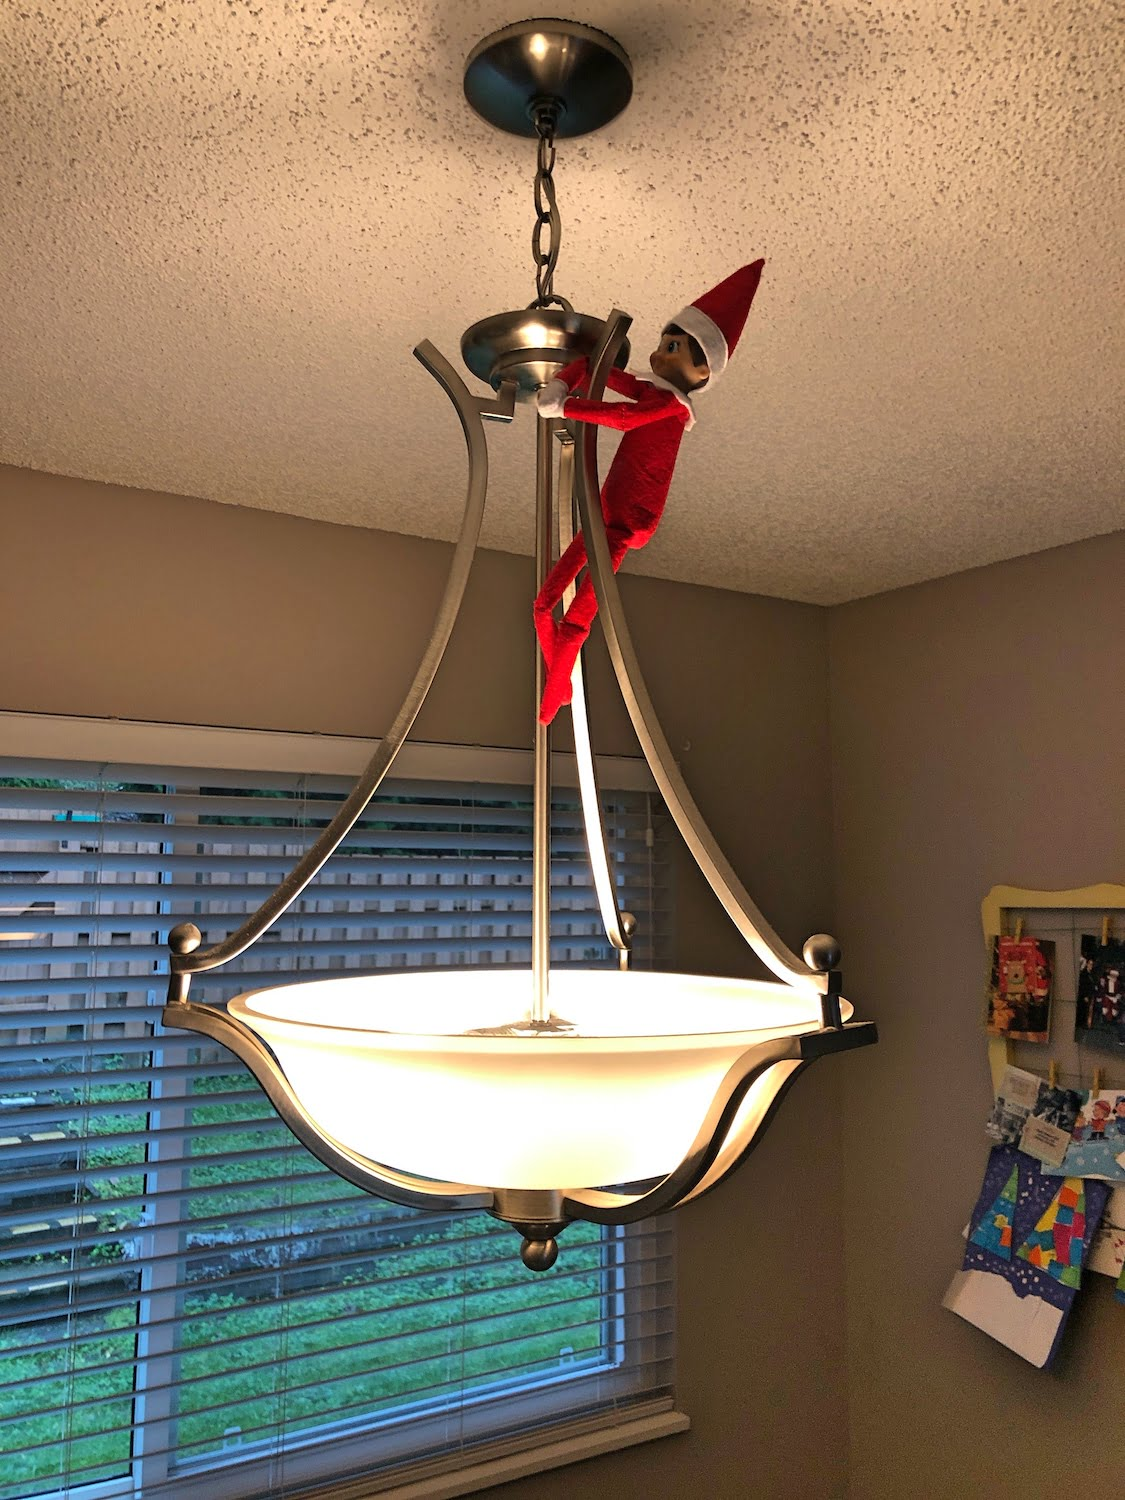 Jingle the Elf on a Shelf - Hanging from Light Fixture